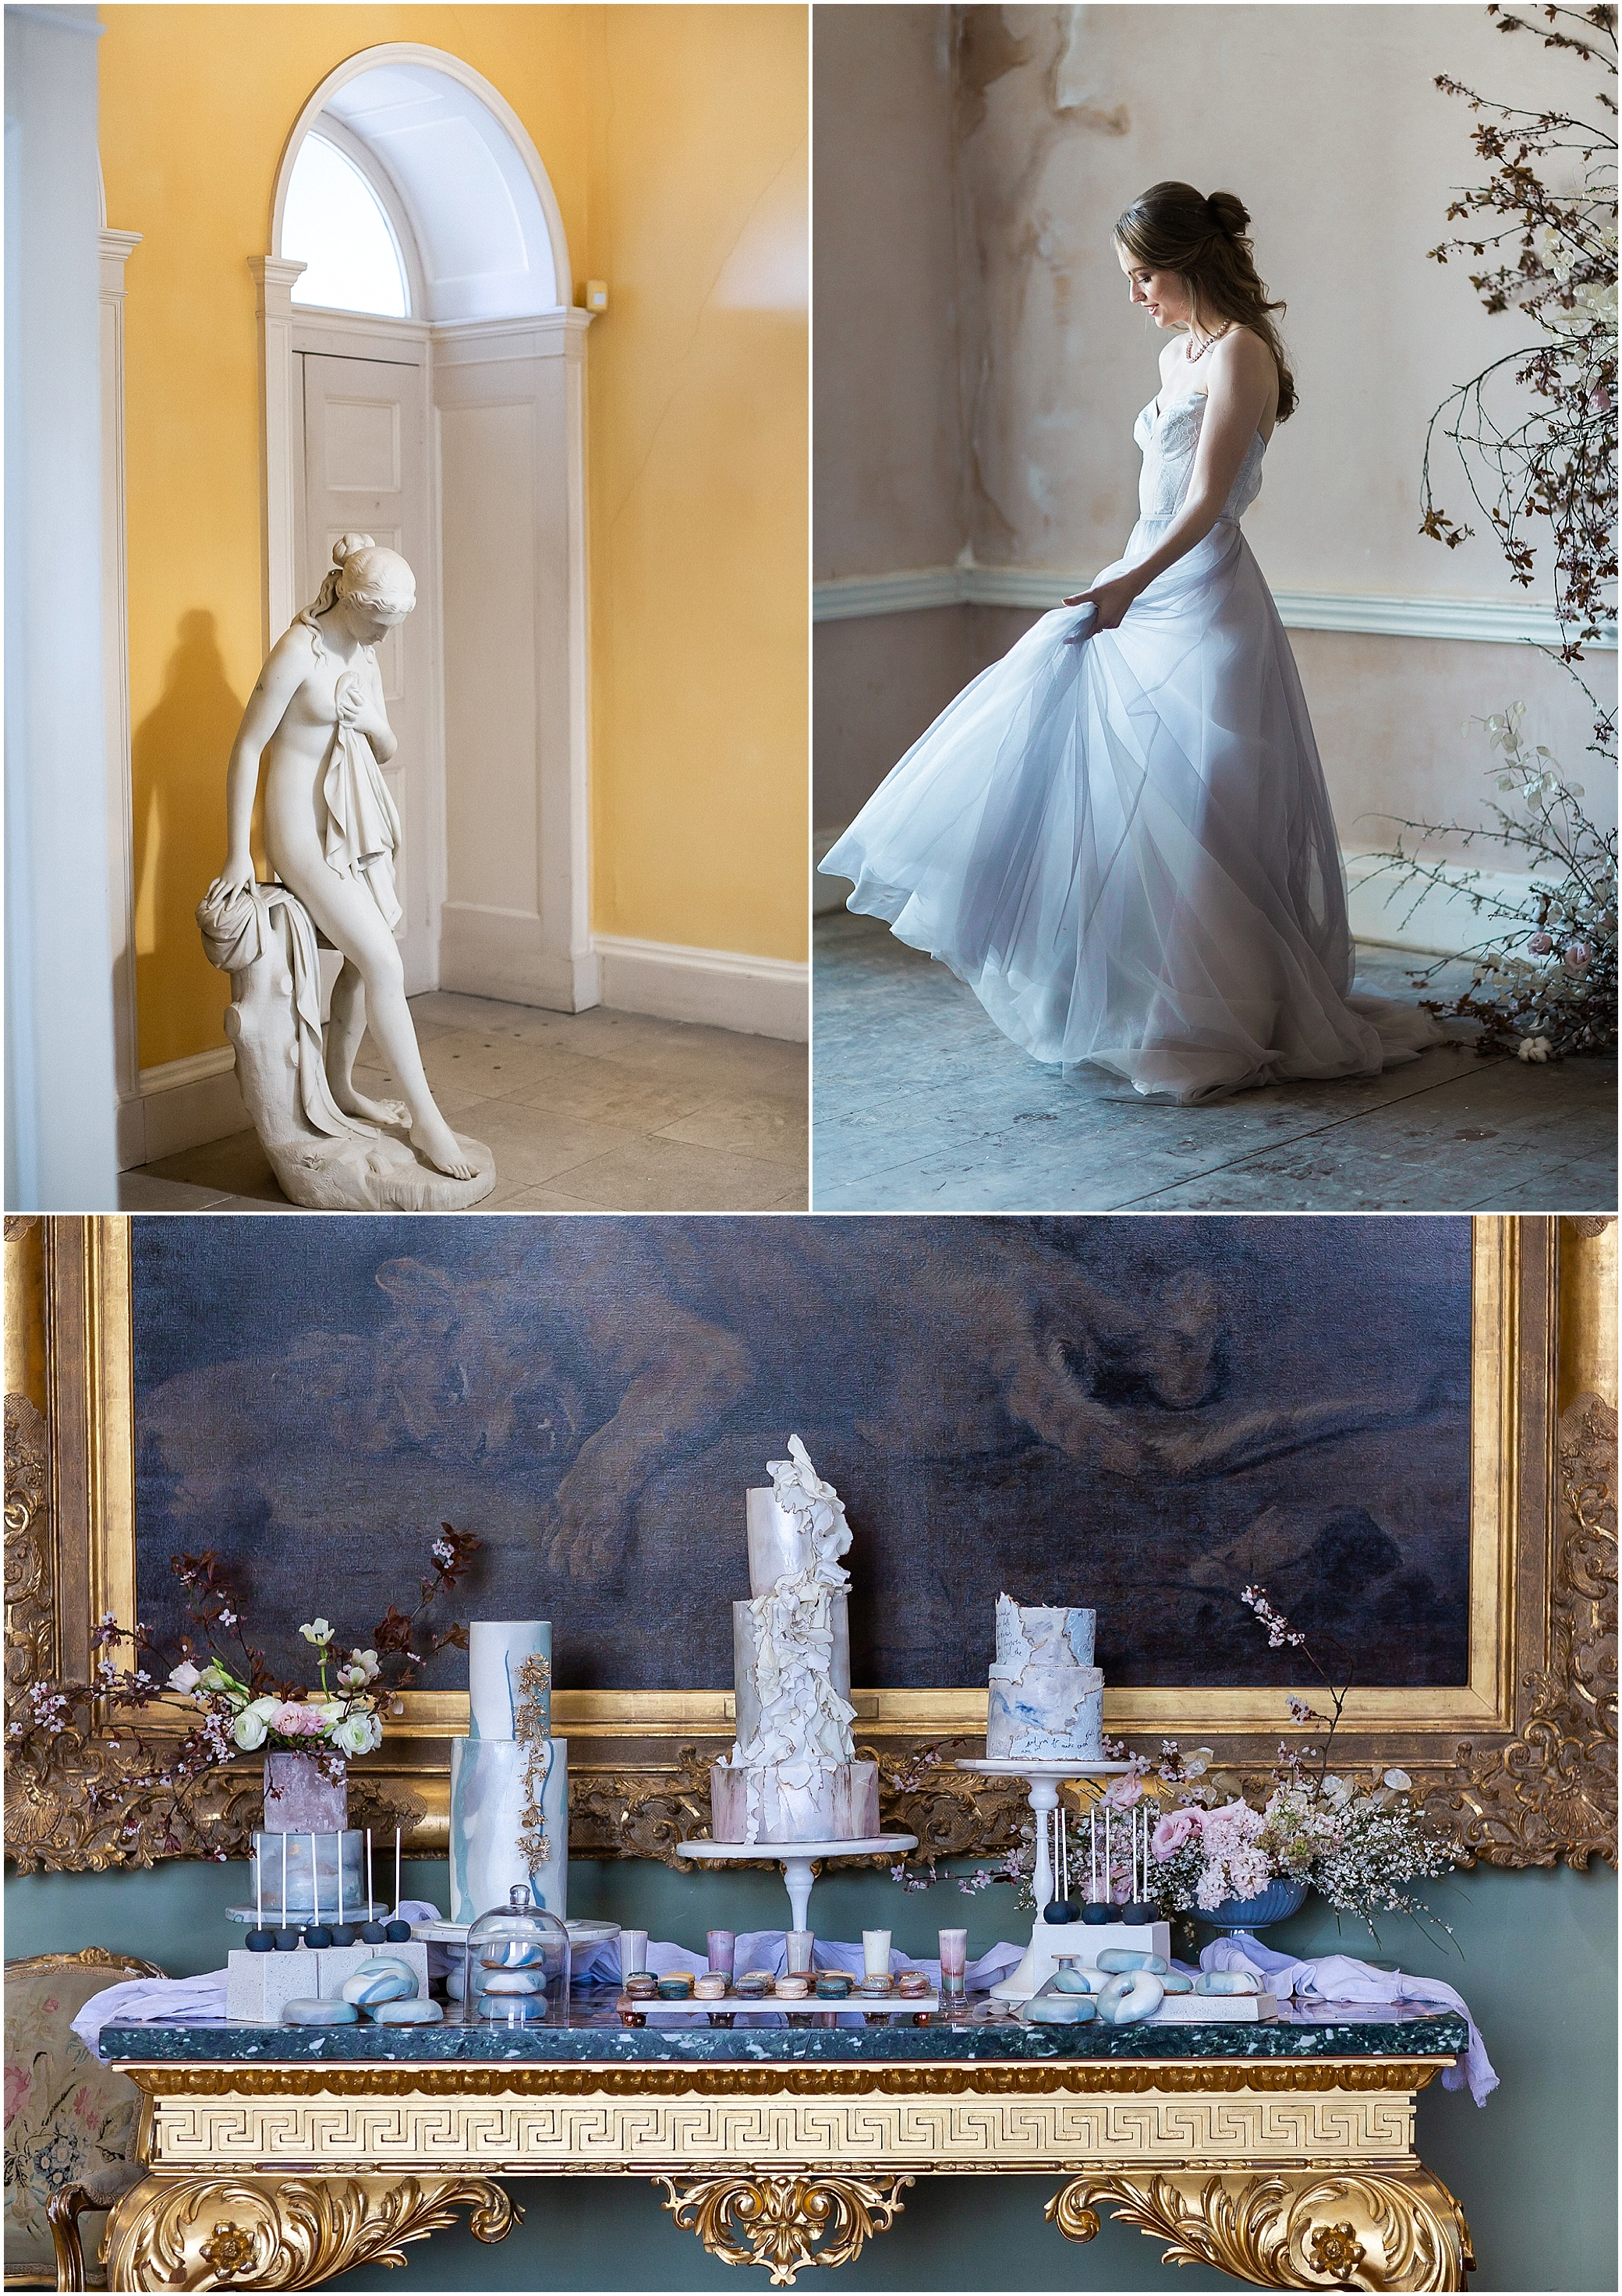 Statue, bride dancing and dessert table in Somerley House Hampshire